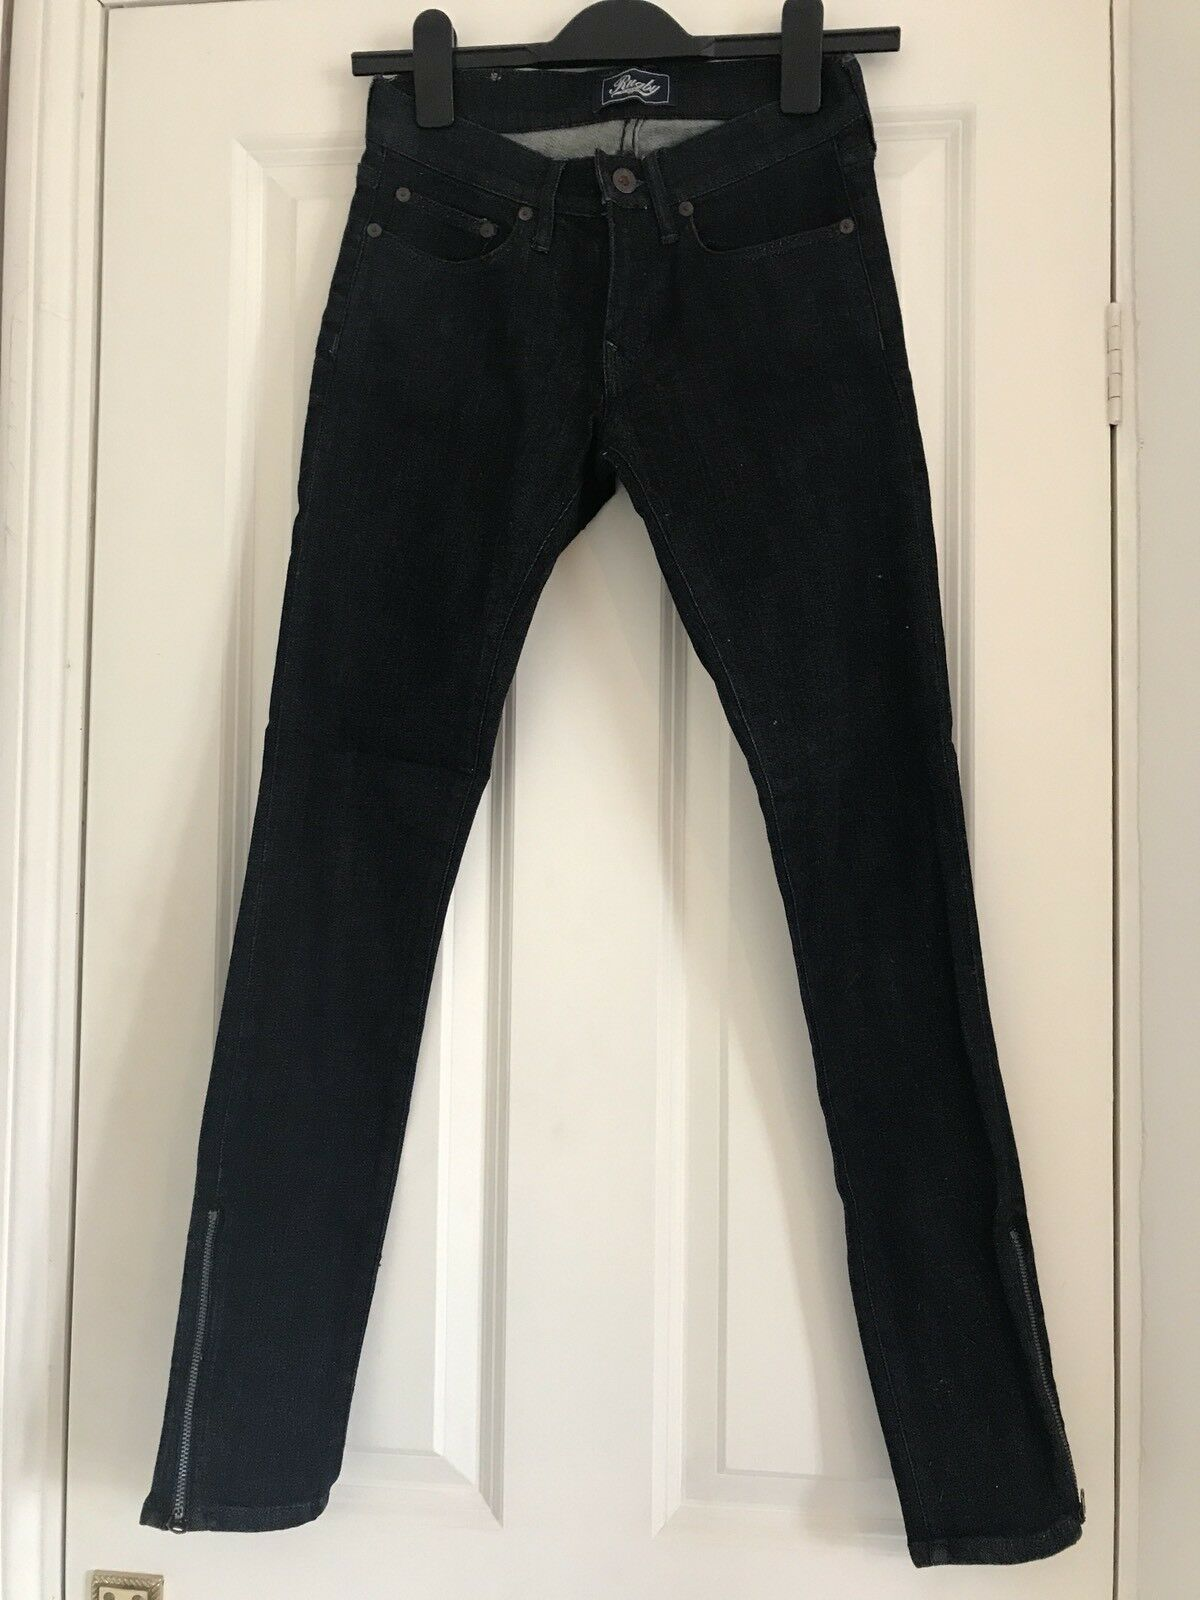 Ralph Lauren Rugby Brand New Dark bluee Skinny Jeans Size 25 Small